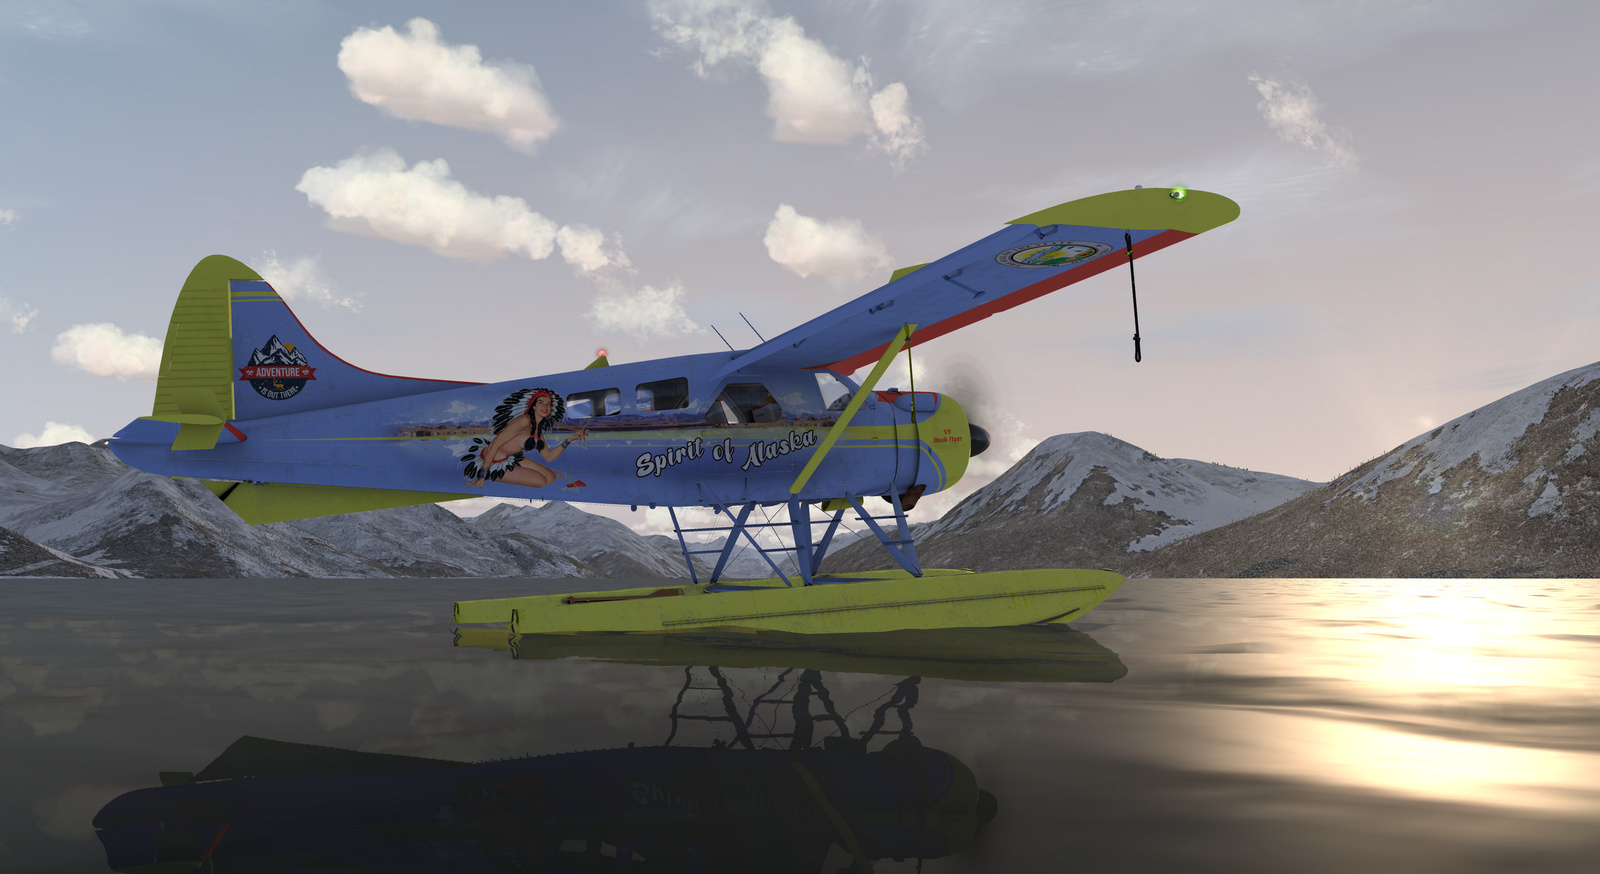 DHC-2 Beaver, Spirit of Alaska, Straight Floats STOL version, Screenshot 9/19